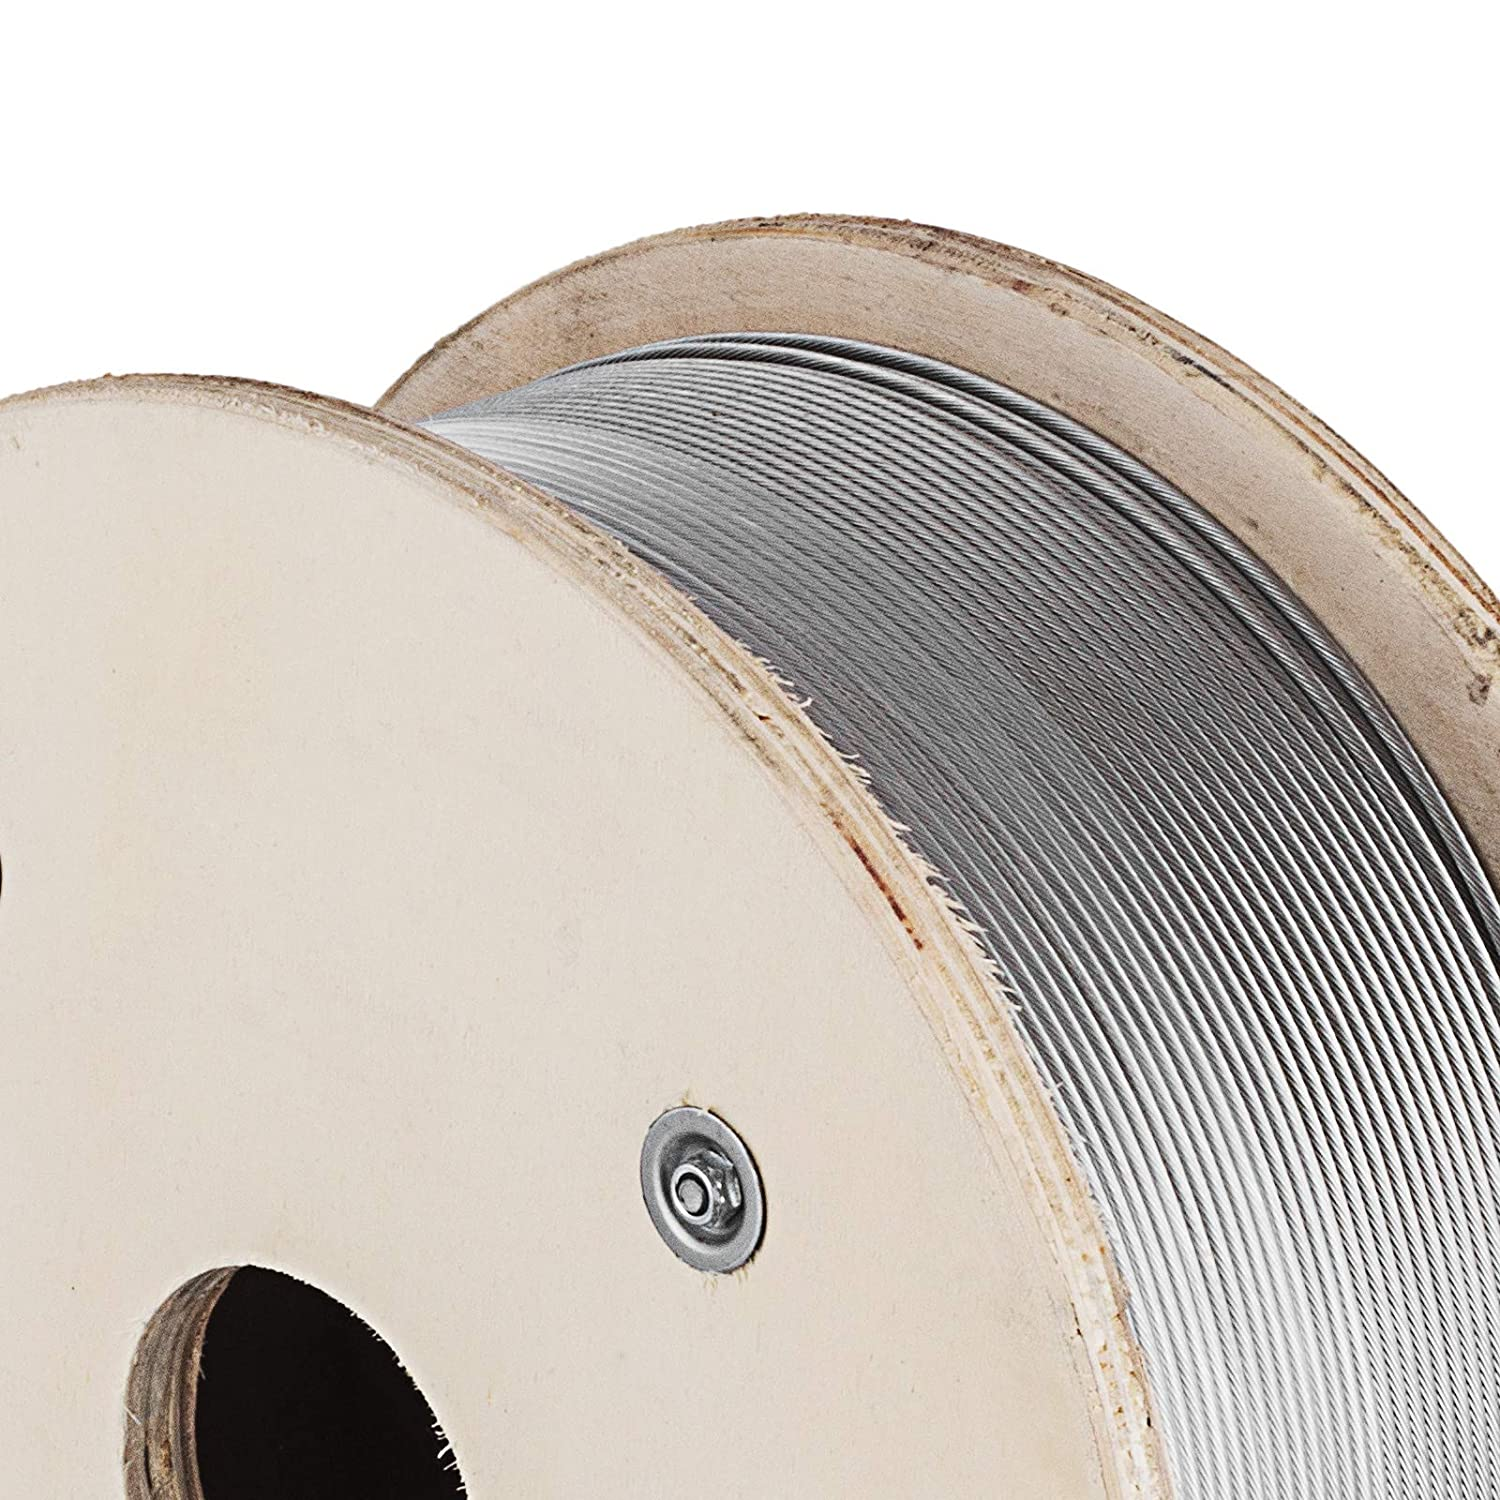 SHZOND T316 Stainless Steel Wire Rope 1000ft Aircraft Wire Rope 1//8 1x19 Type Cable Railing for Decking and DIY Balustrade